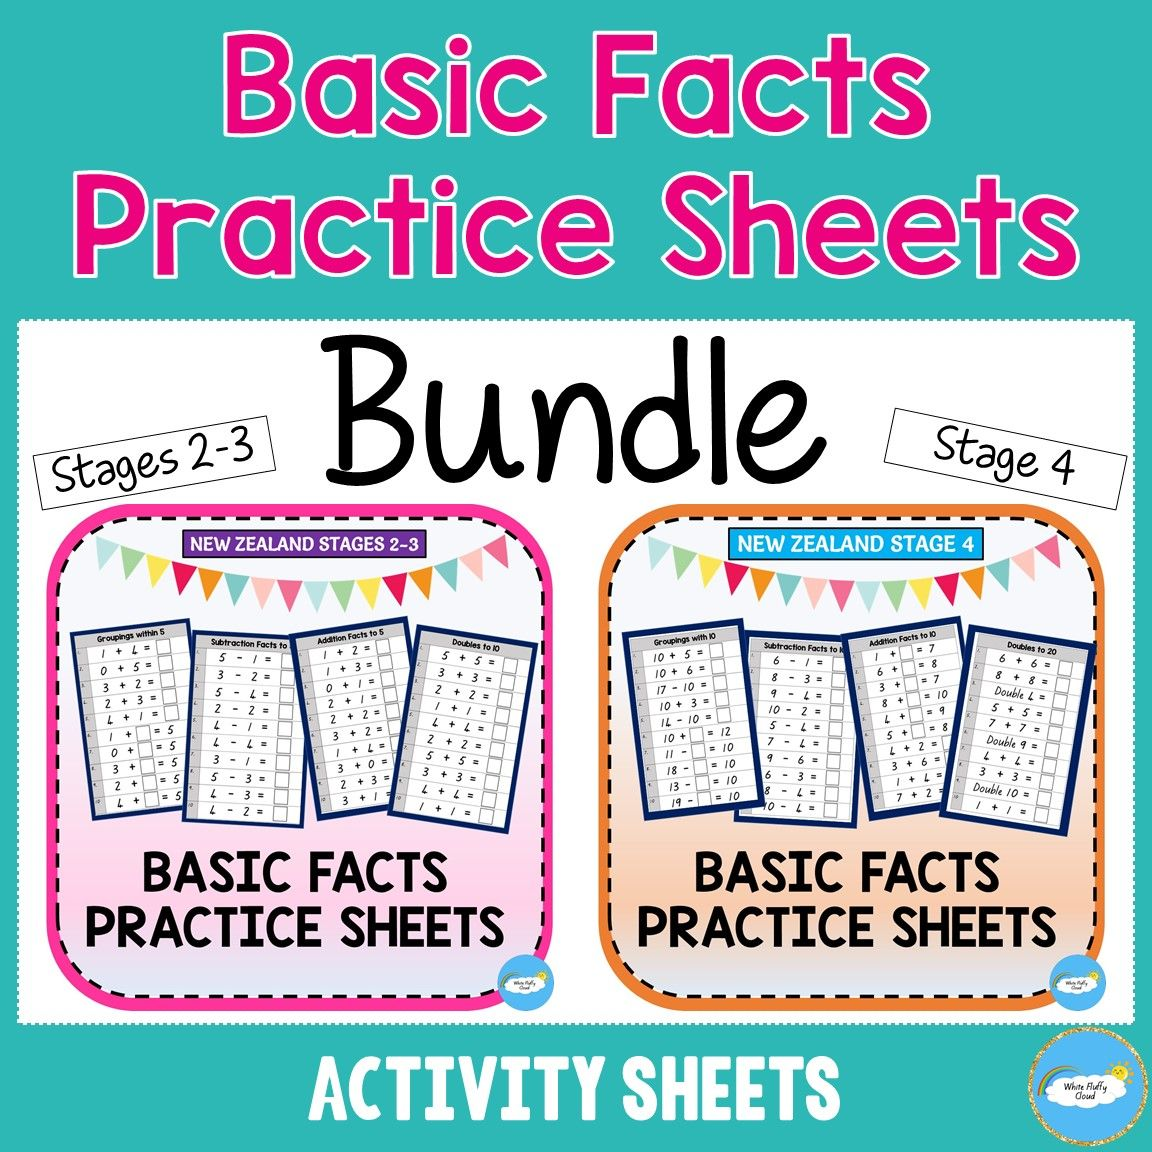 Bundle Basic Facts Practice Sheets Nz Stages 2 3 Stage 4 In 2020 Basic Facts Practice Basic Facts Practice Sheet